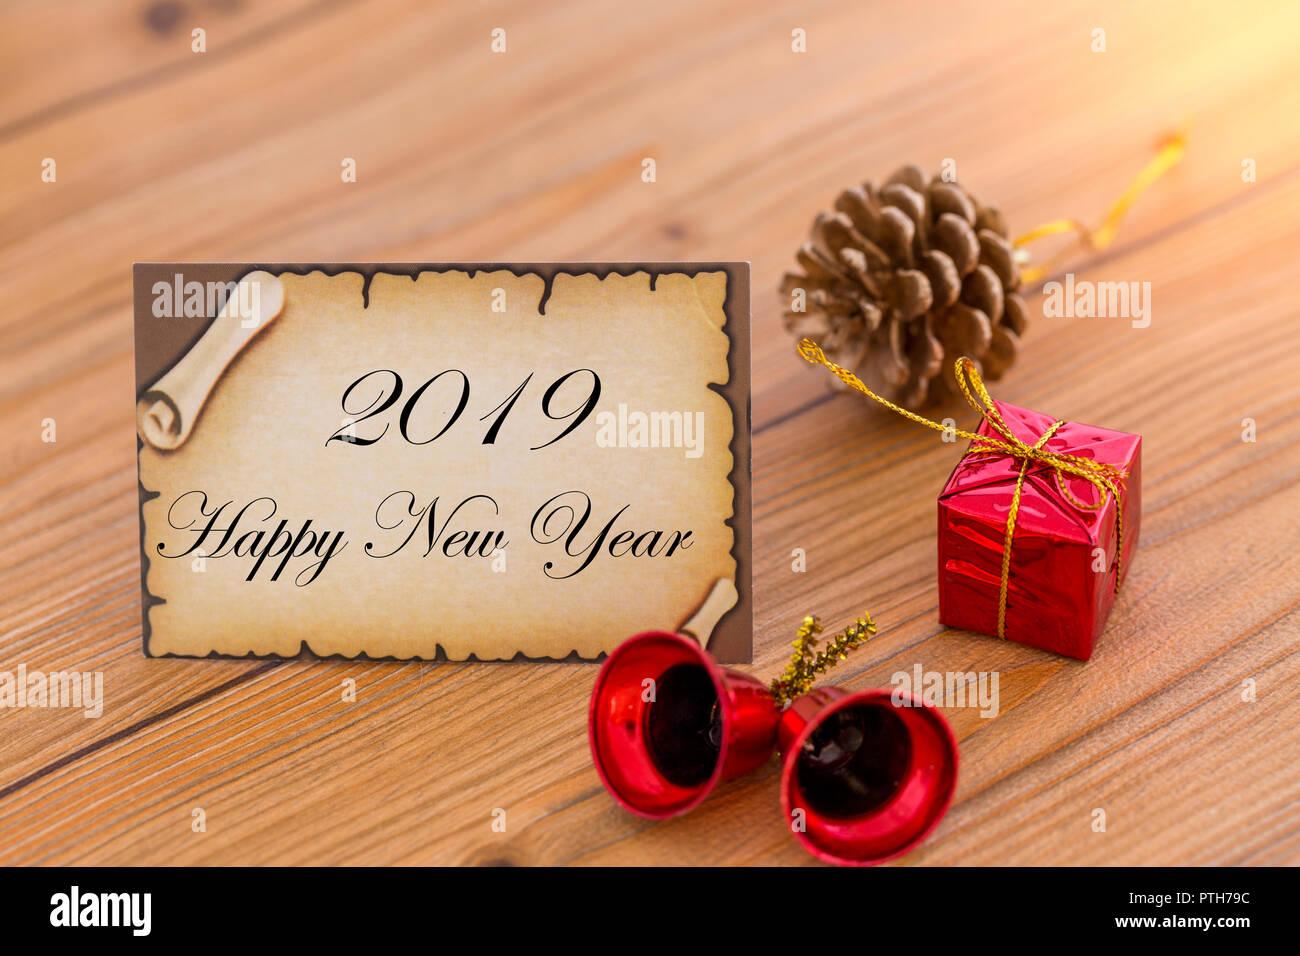 greeting card for new year or christmas with christmas decorations stock image